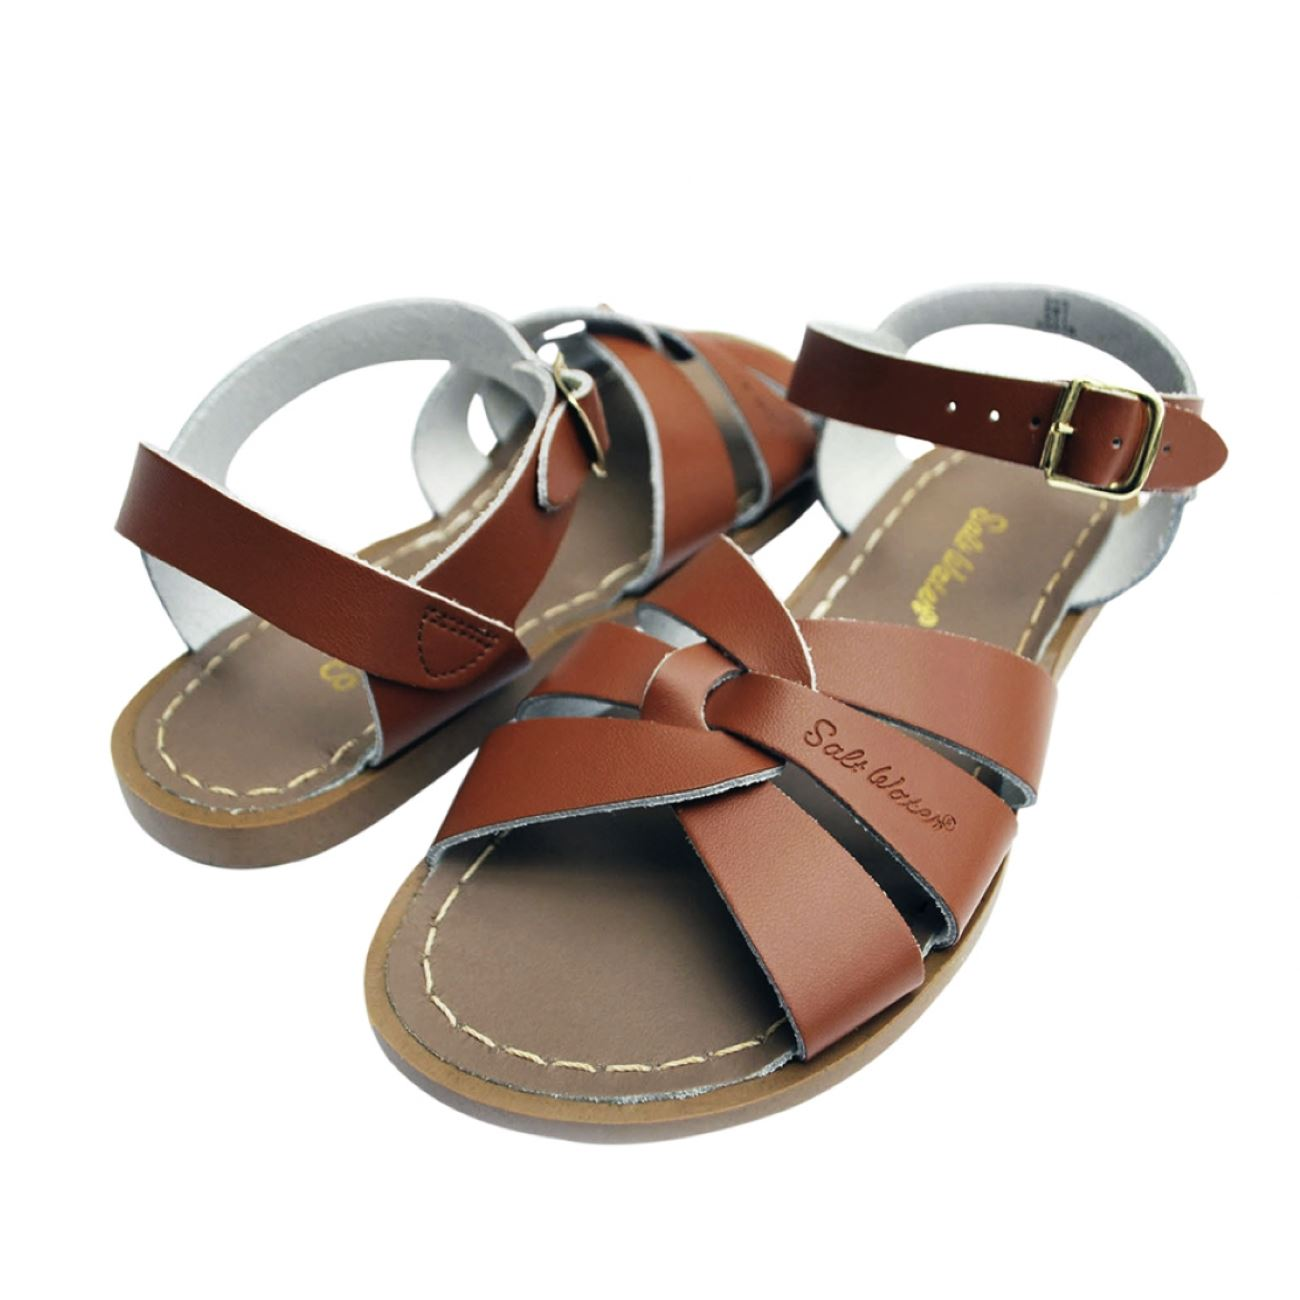 Salt Water Sandals, Original, Child, Tan Sandals Salt Water Sandals Tan C4